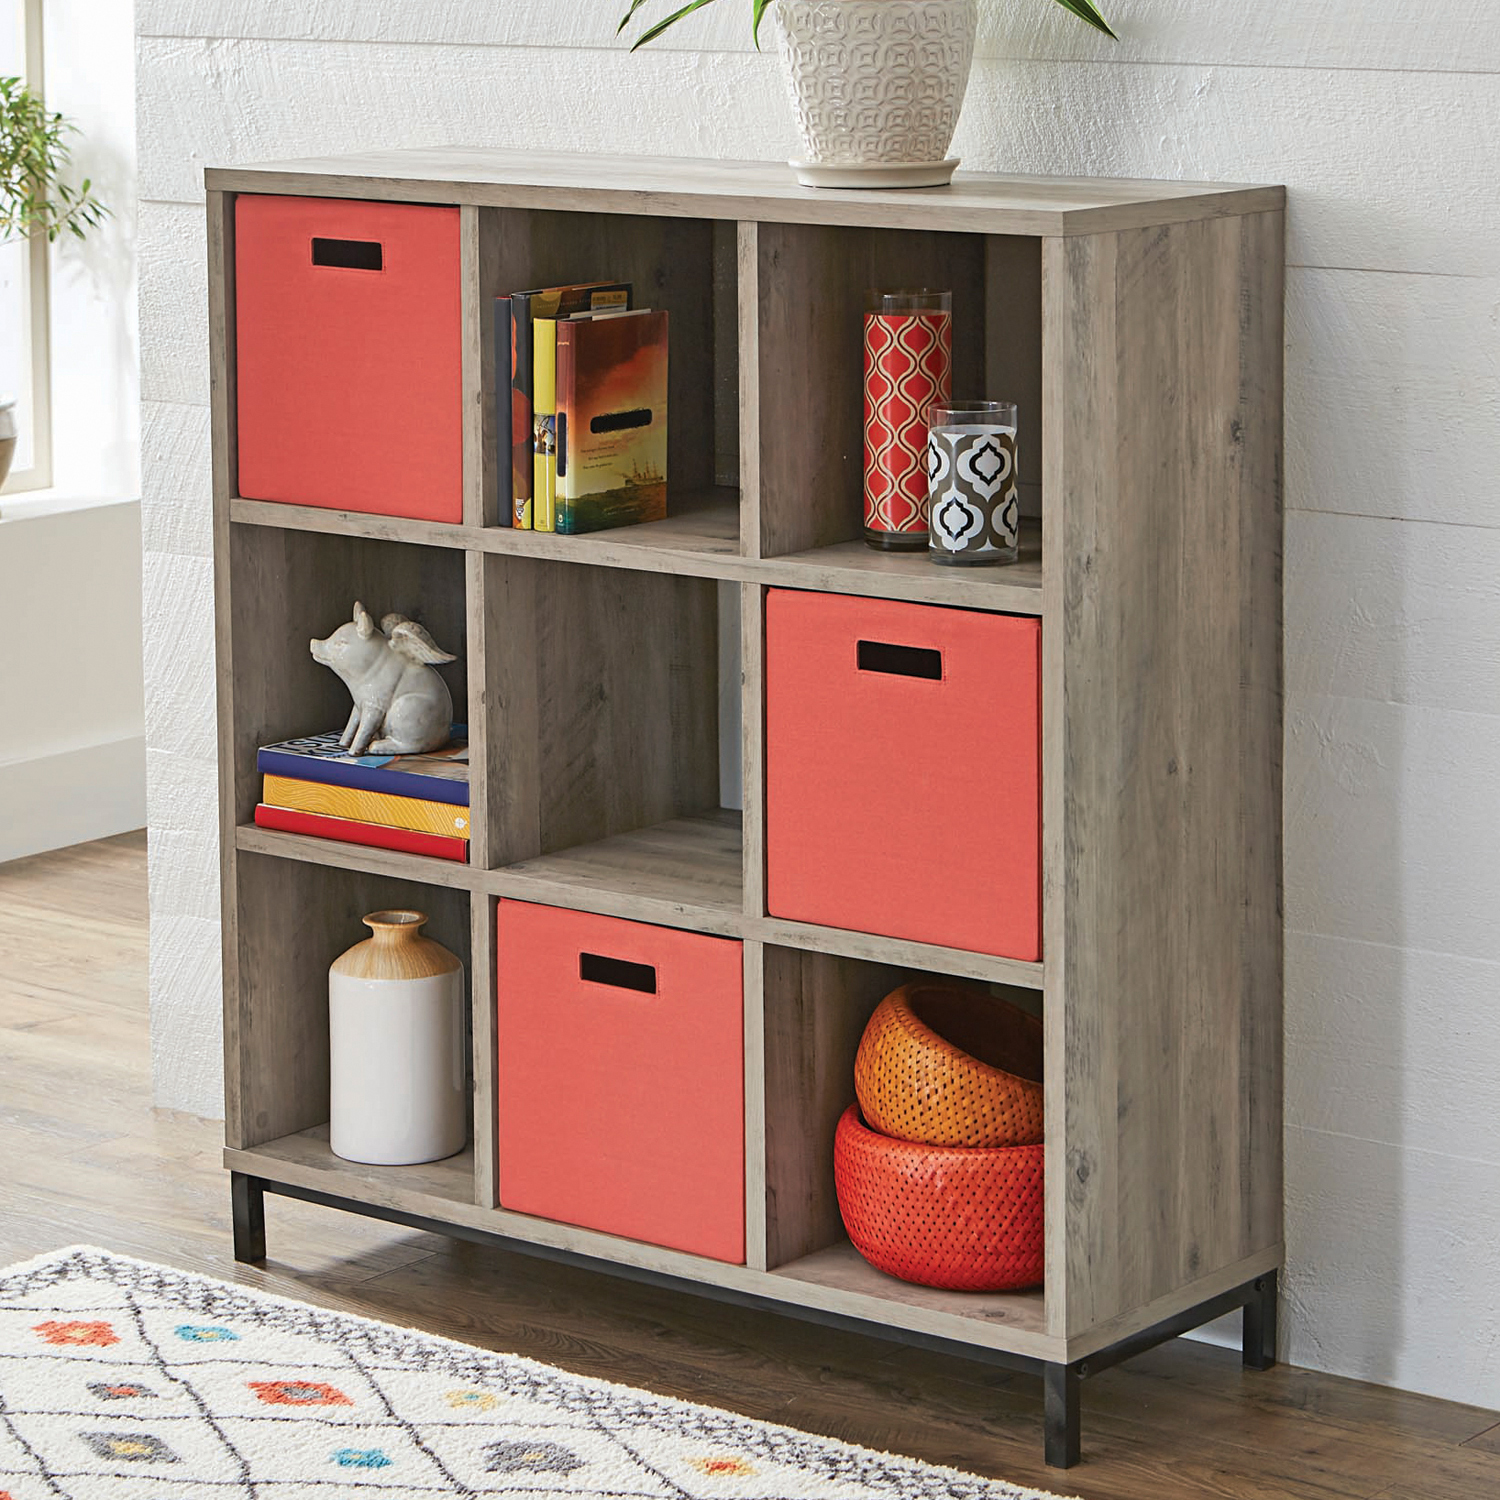 Better Homes and Gardens 9-Cube Storage Organizer, Multiple Finishes